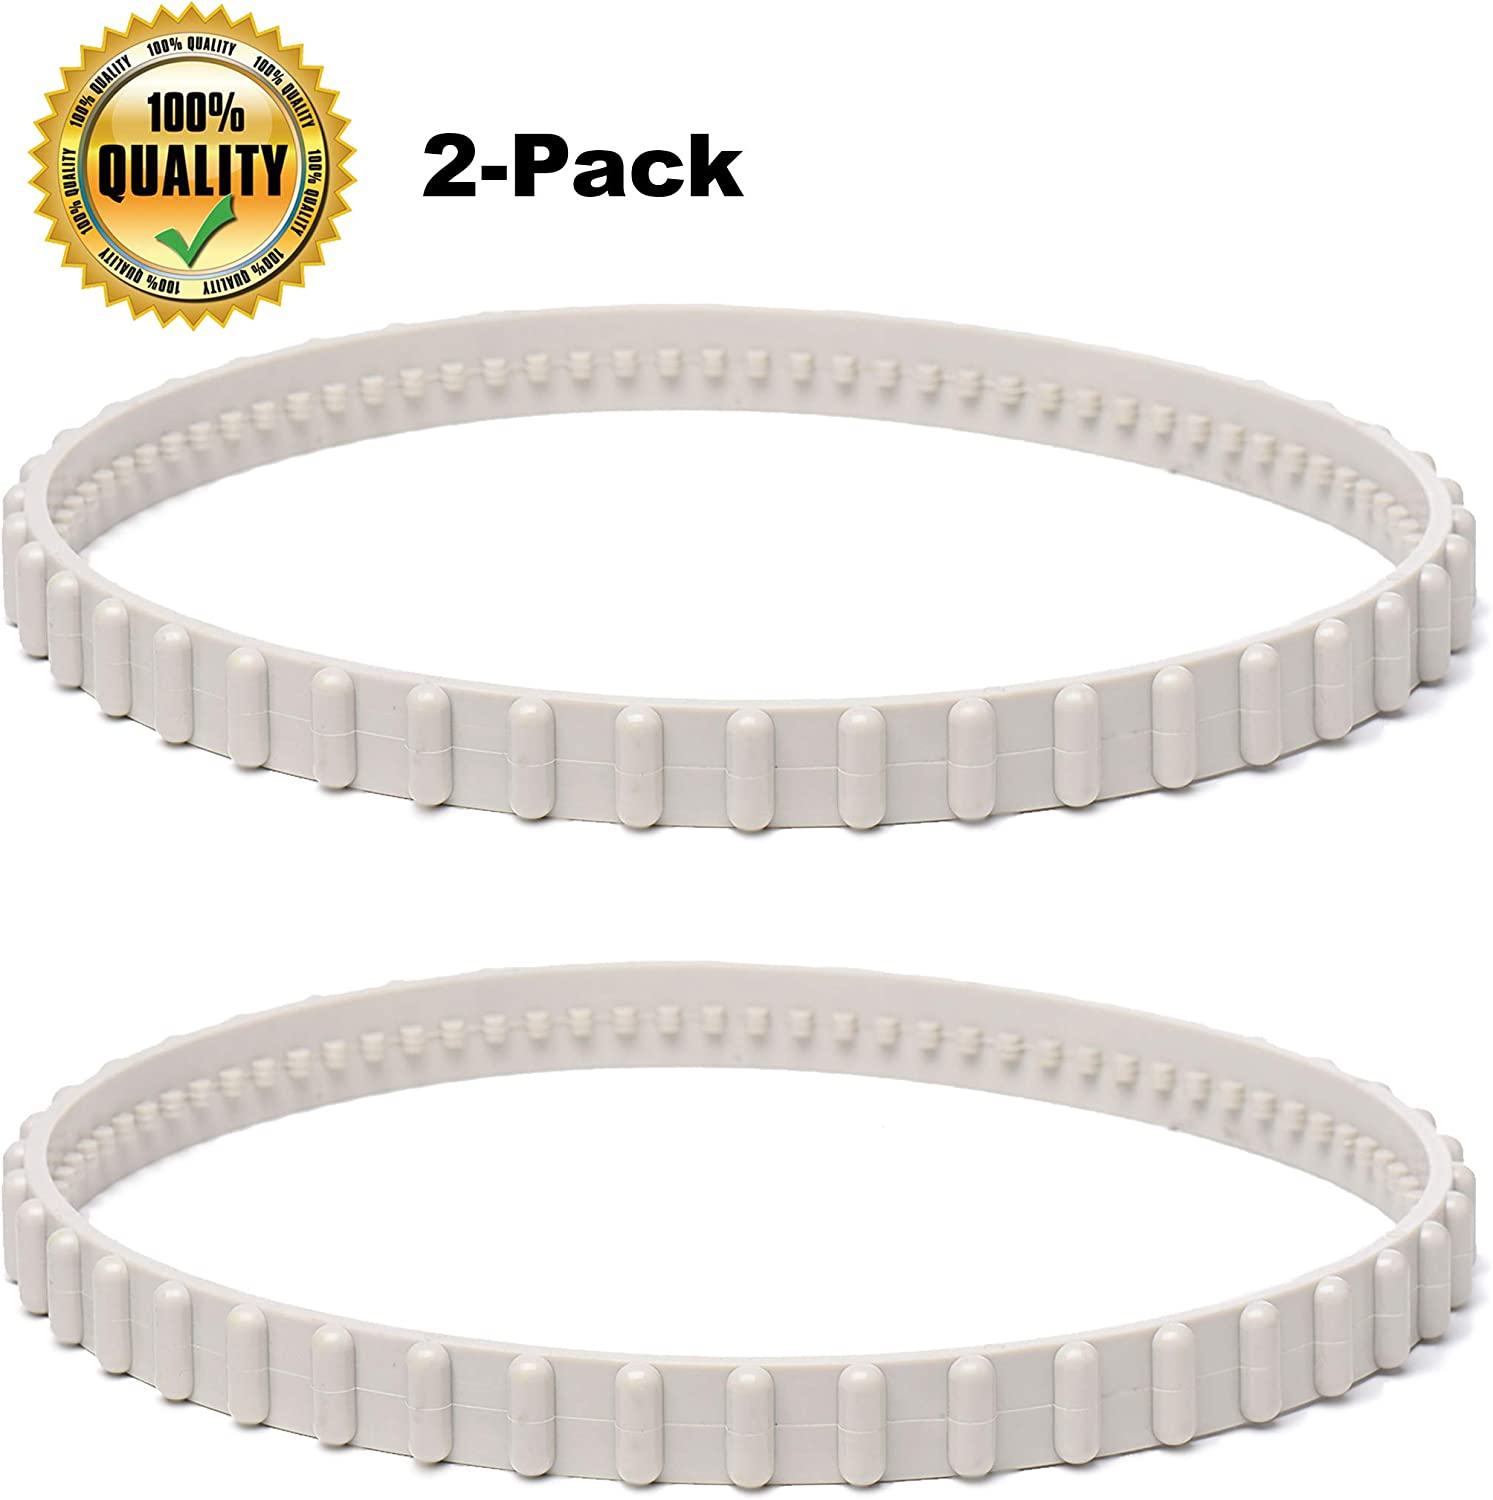 AR-PRO 2-Pack RCX23002 Exact Drive Belt Replacement for Hayward Aquavac Tiger Shark/Plus/QC/SharkVac Pool Cleaner | Made of Premium, Heavy Duty Rubber - 50% More Durable